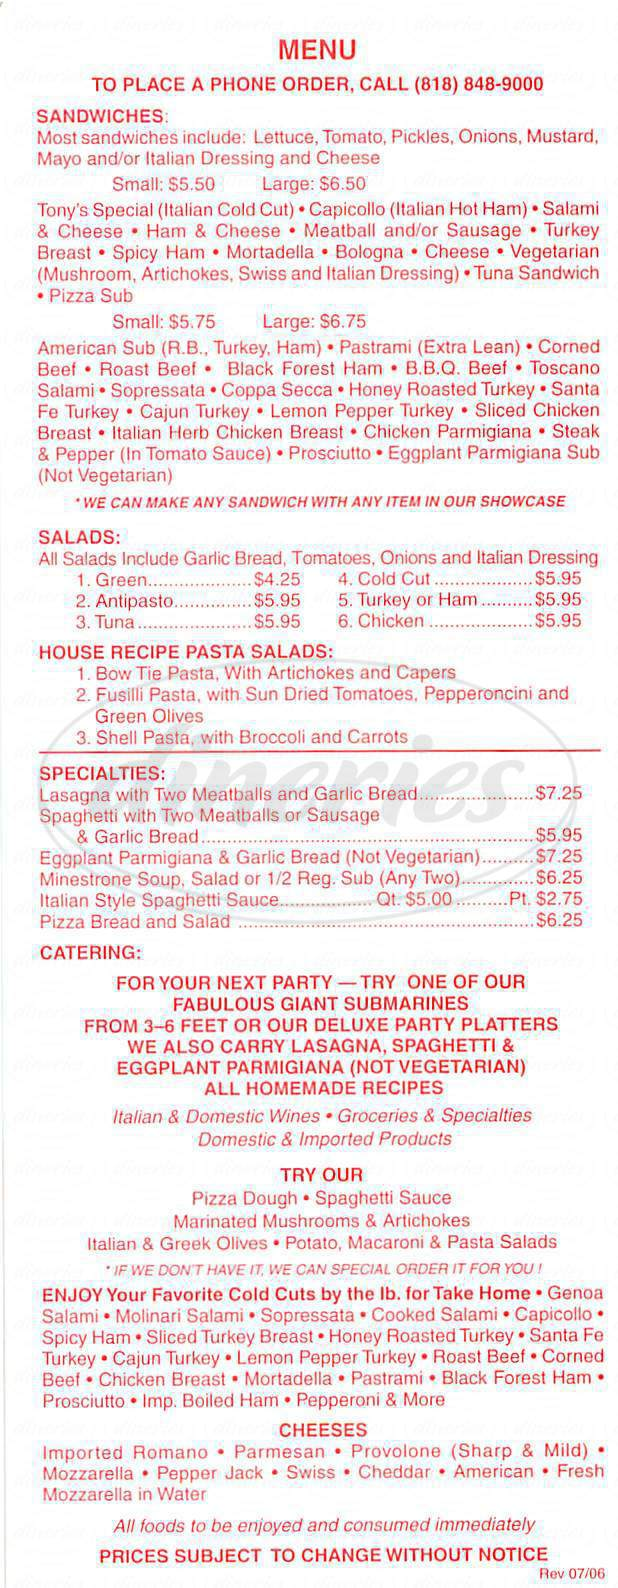 menu for Tony's Italian Deli